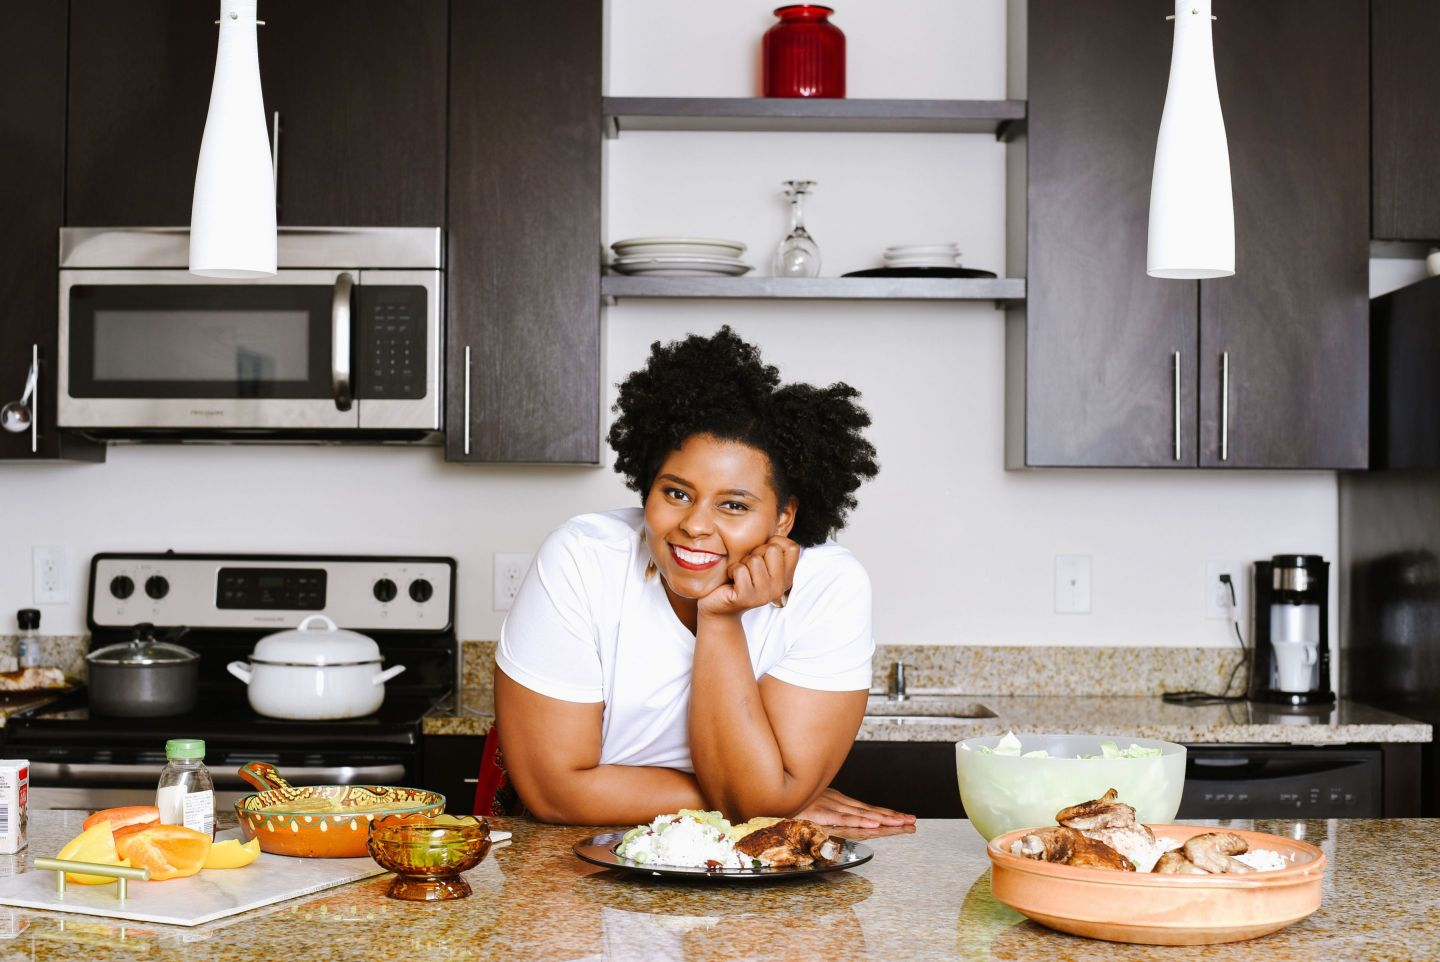 Chakayla81of1-1440x962 North Carolina Chef Gives 3 Tips for Making Cooking at Home Easier